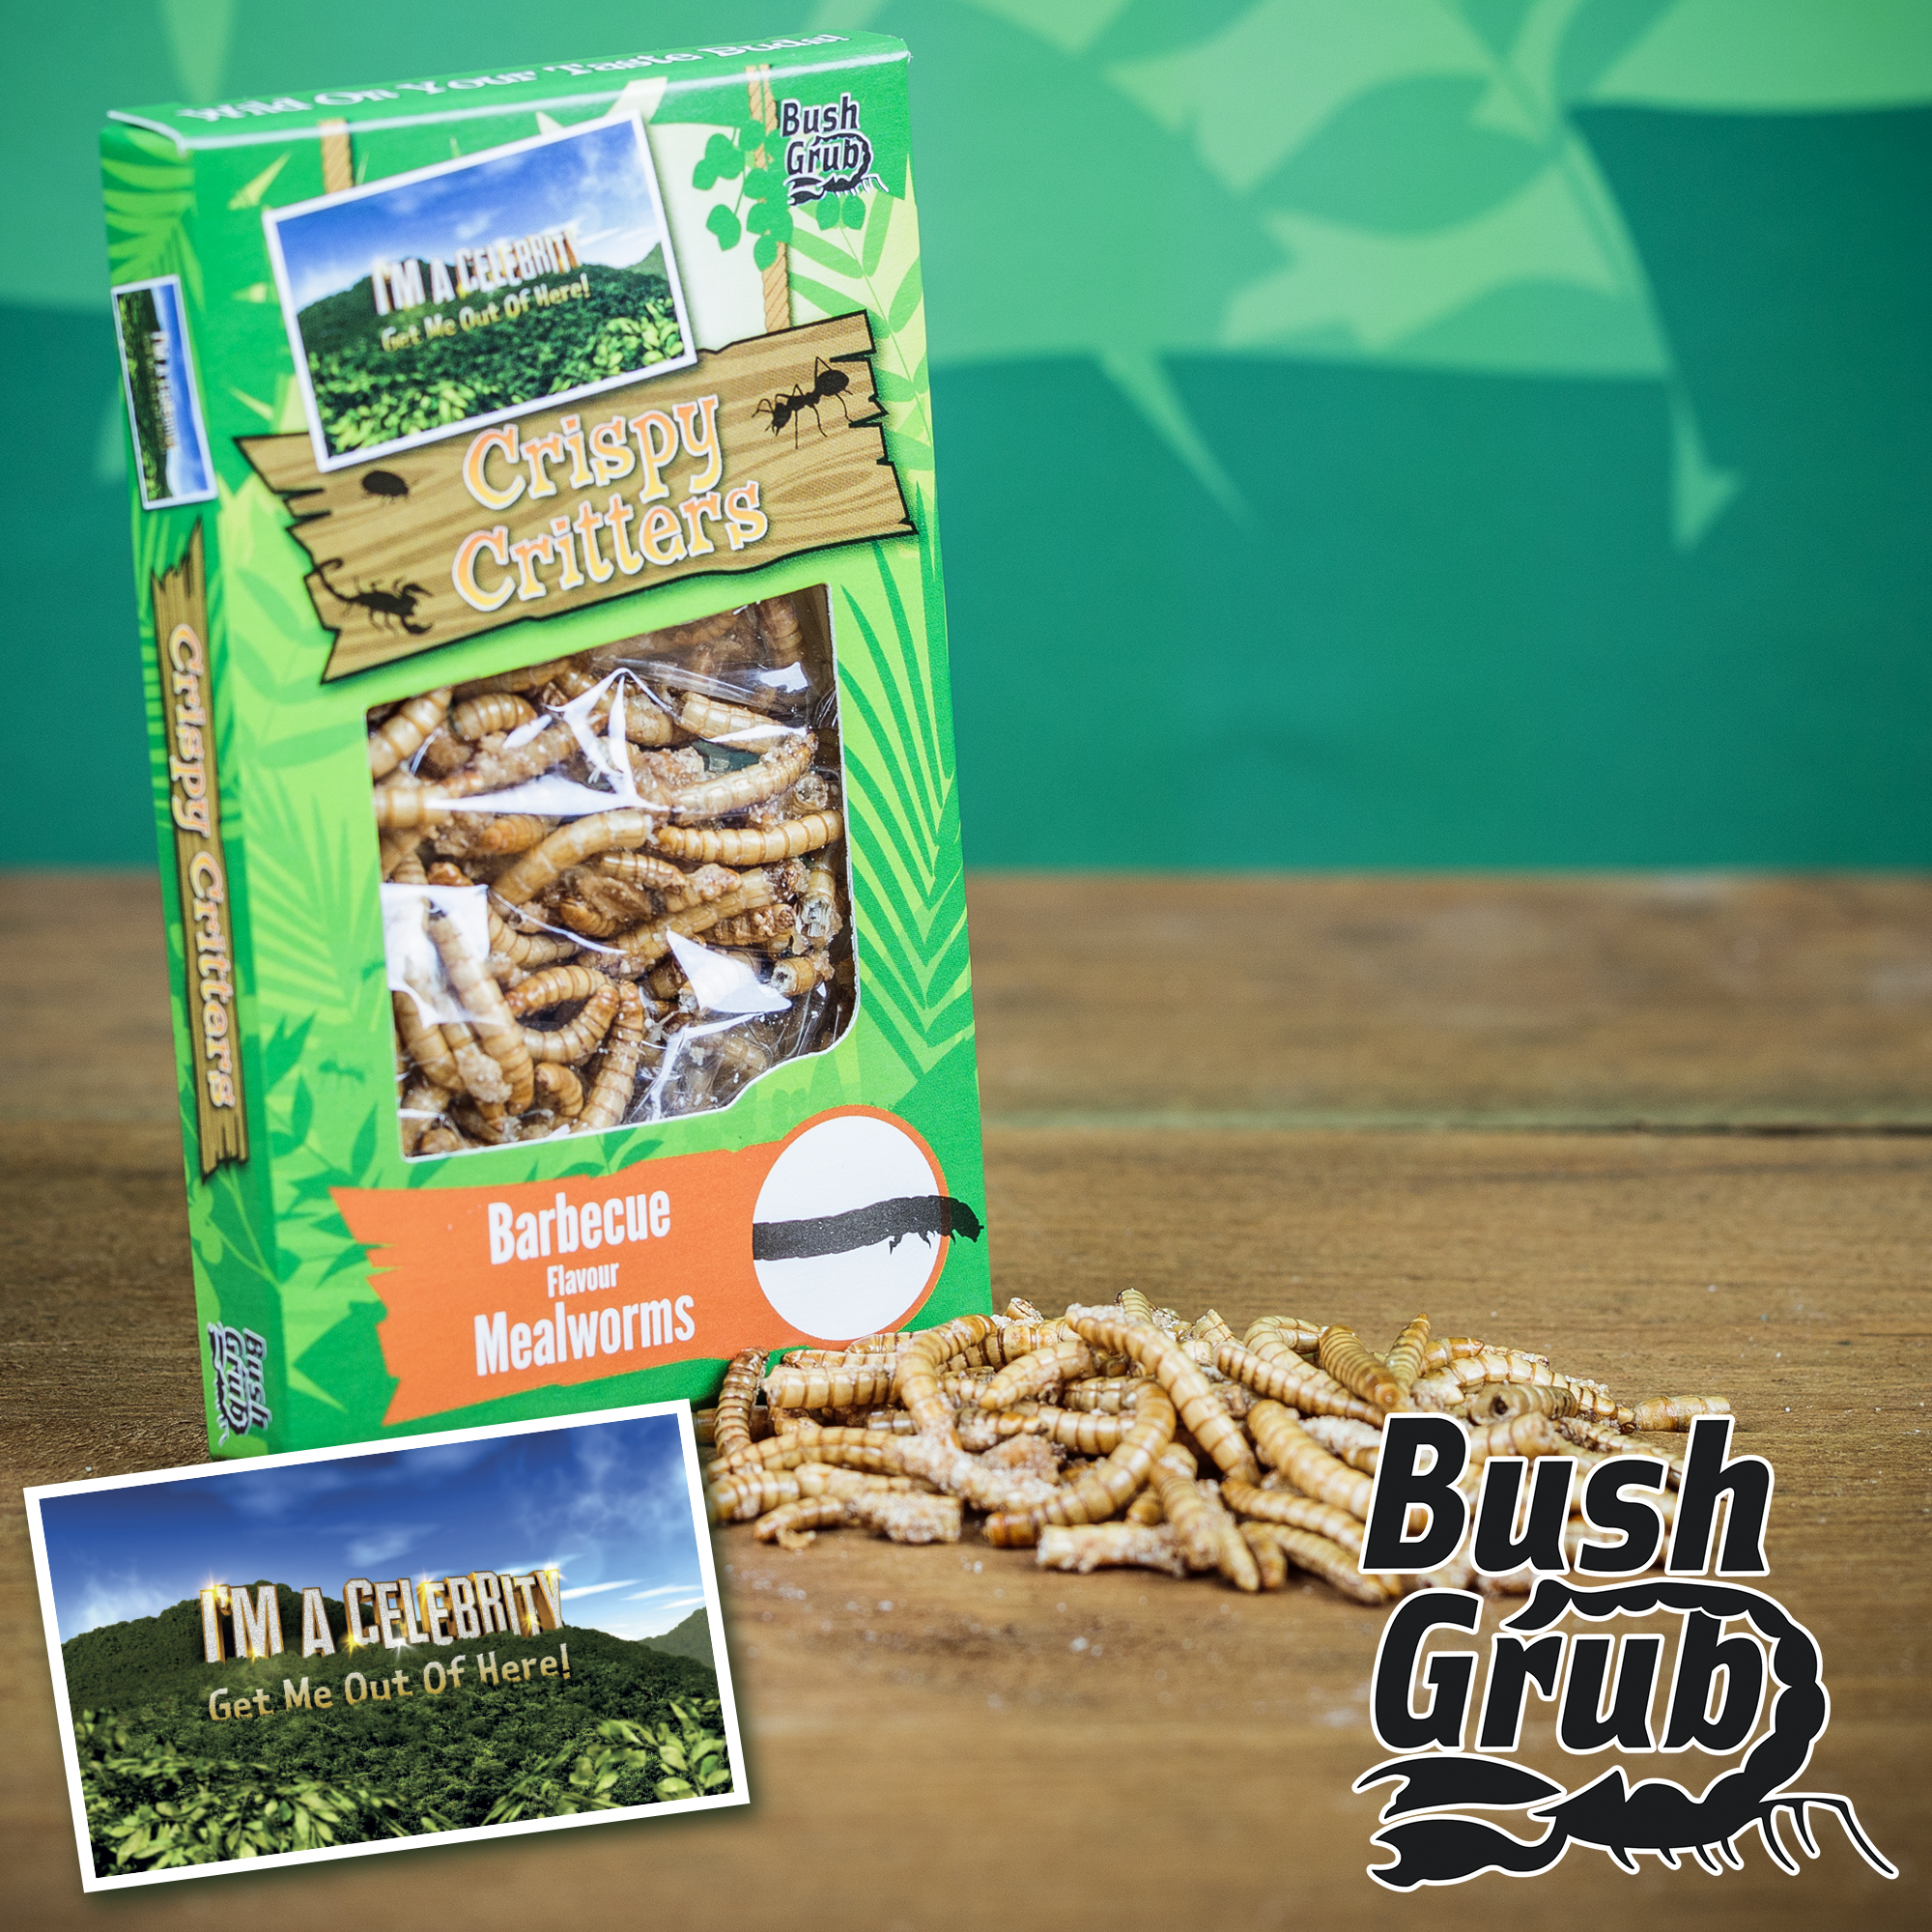 Bush Grub Crispy Critters: Barbecue Flavour Mealworms (6g)-0